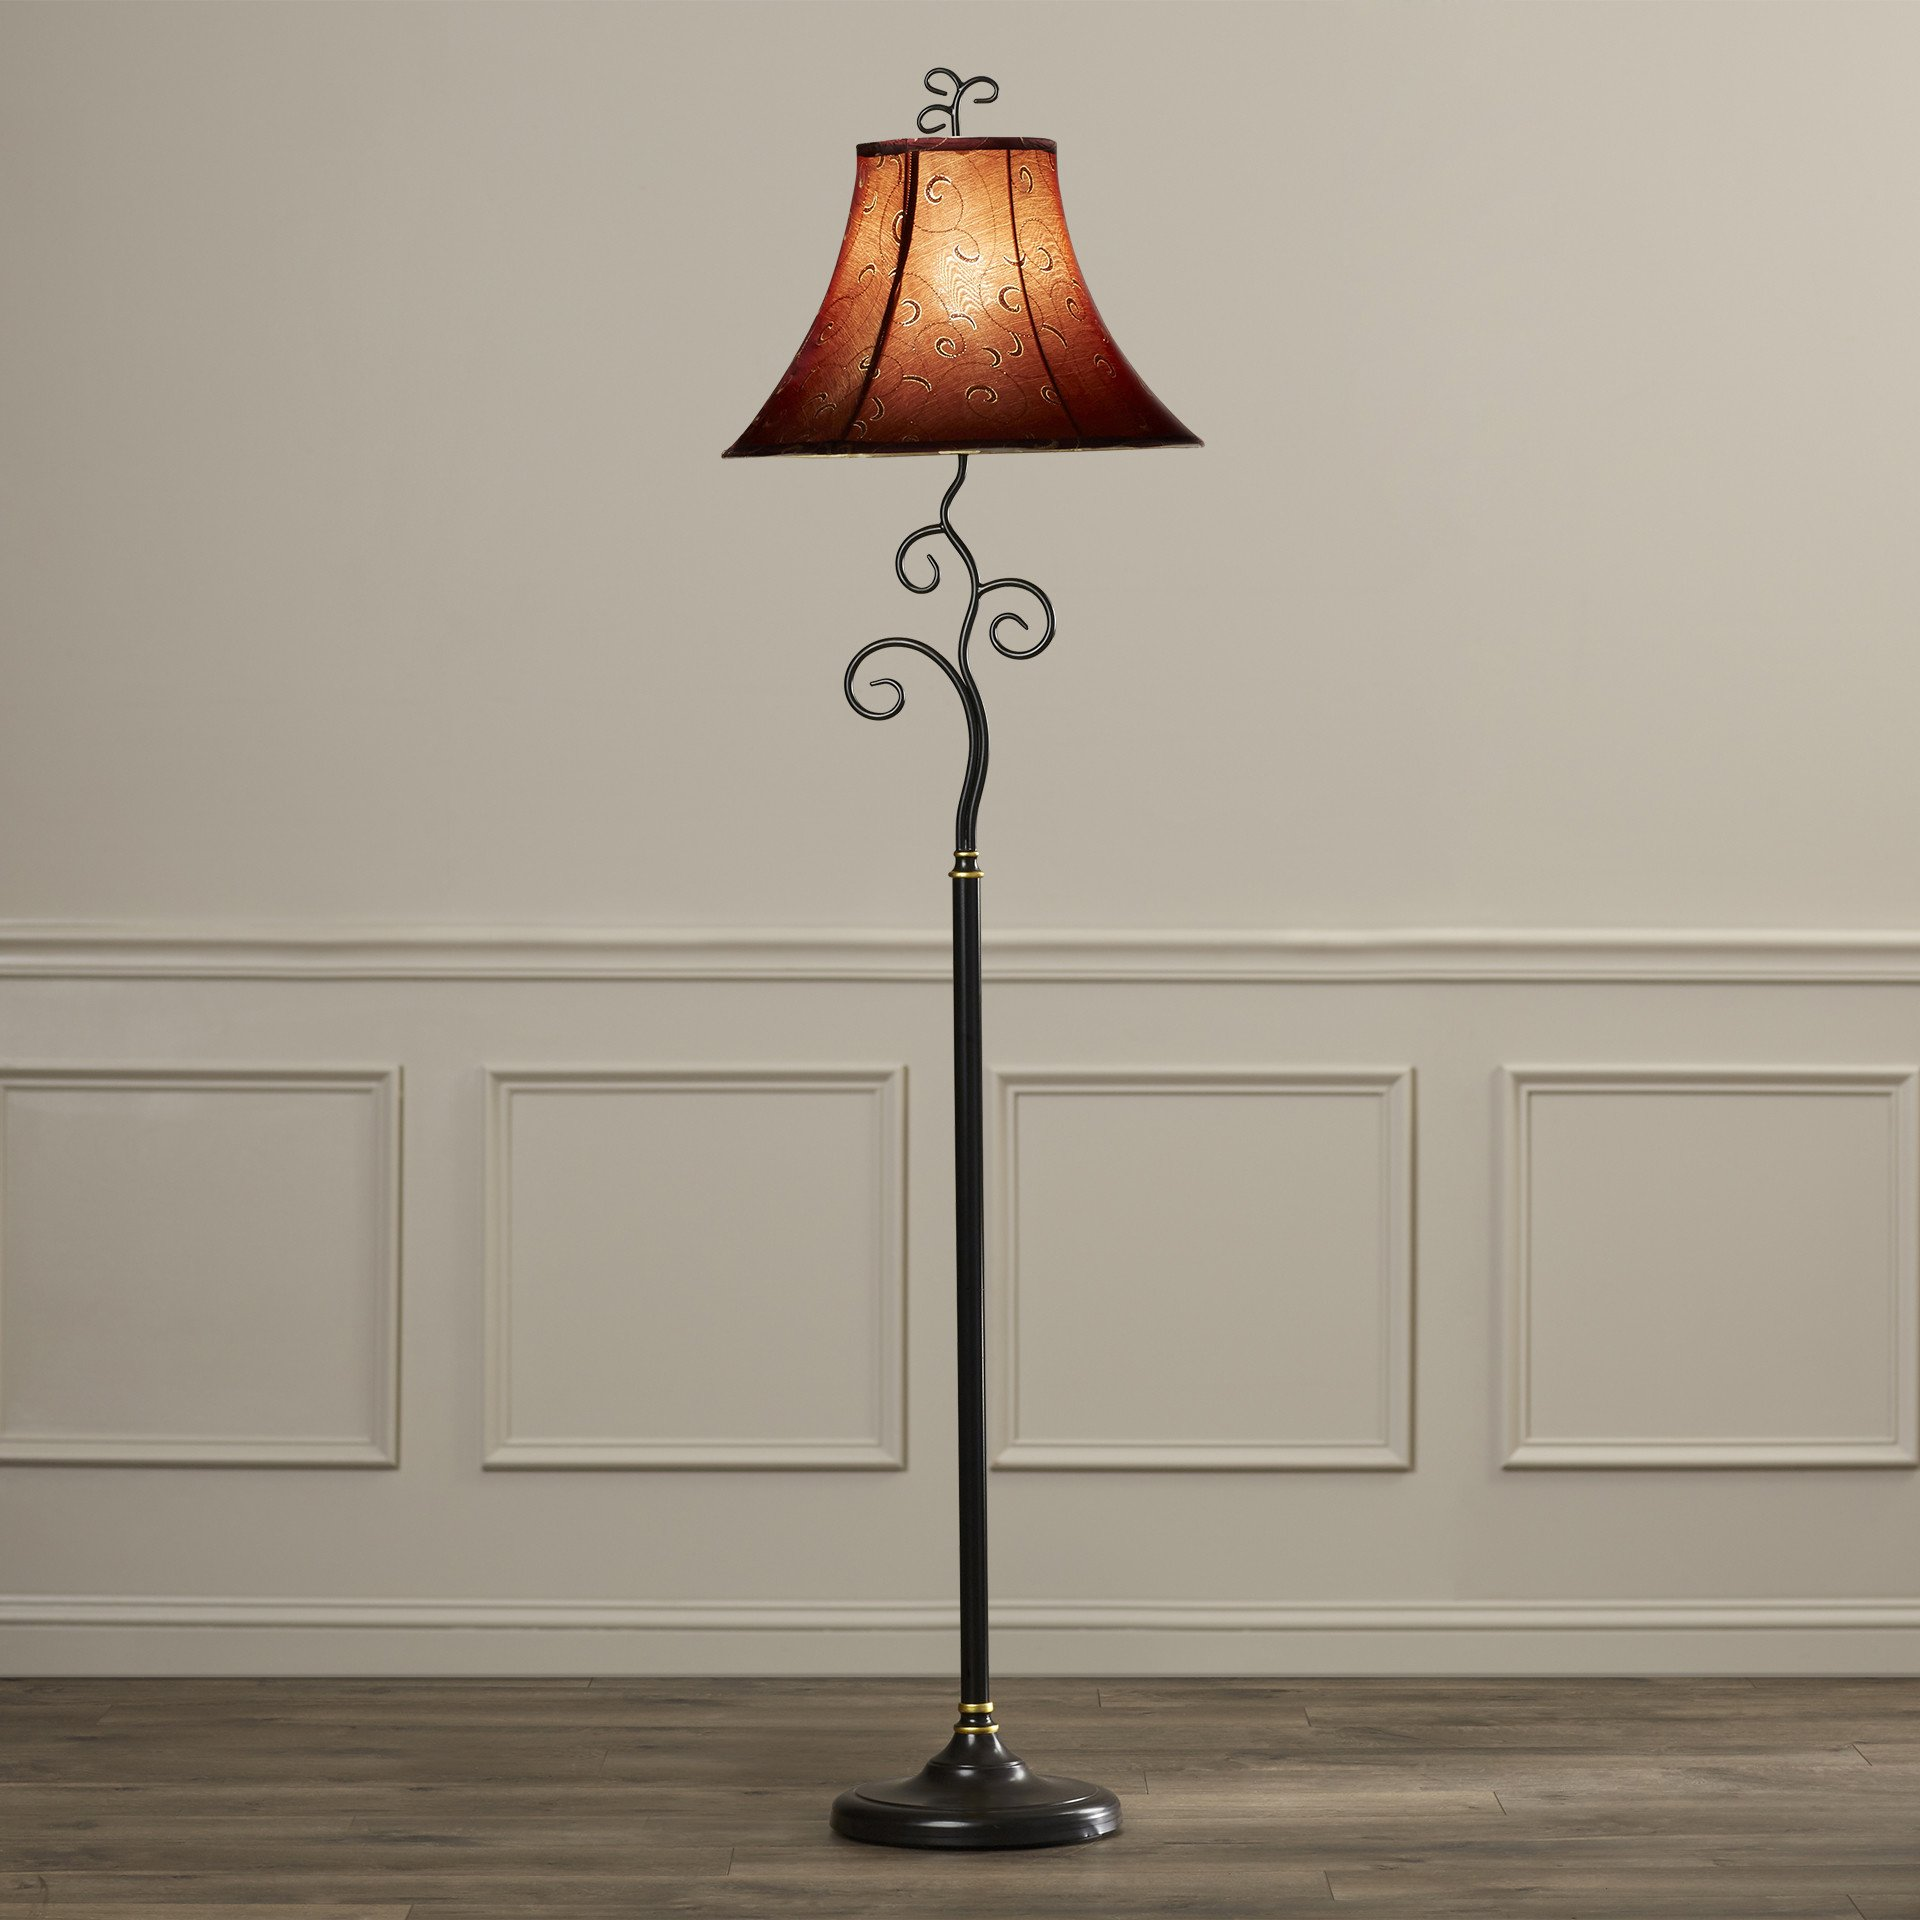 61-Inch Tall Contemporary Floor Lamp with Red / Gold Bell Fabric Shade for Living Room